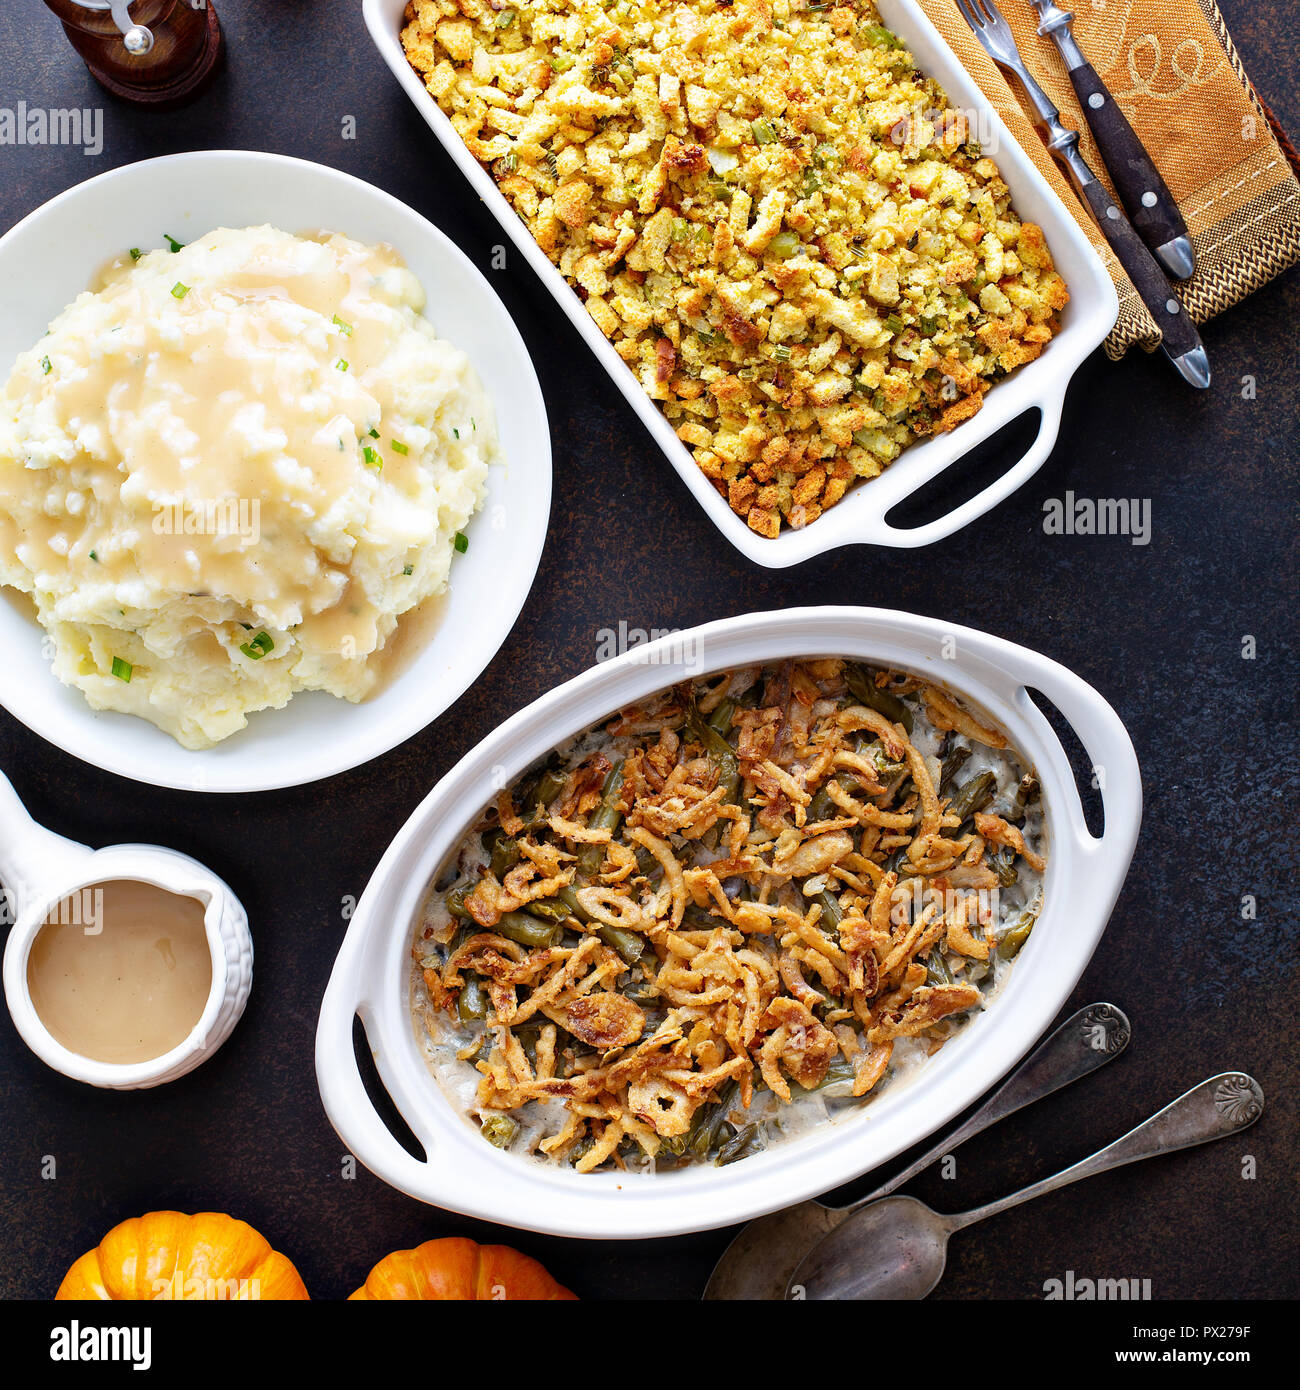 All Traditional Thanksgiving Side Dishes Mashed Potatoes Green Beans And Stuffing